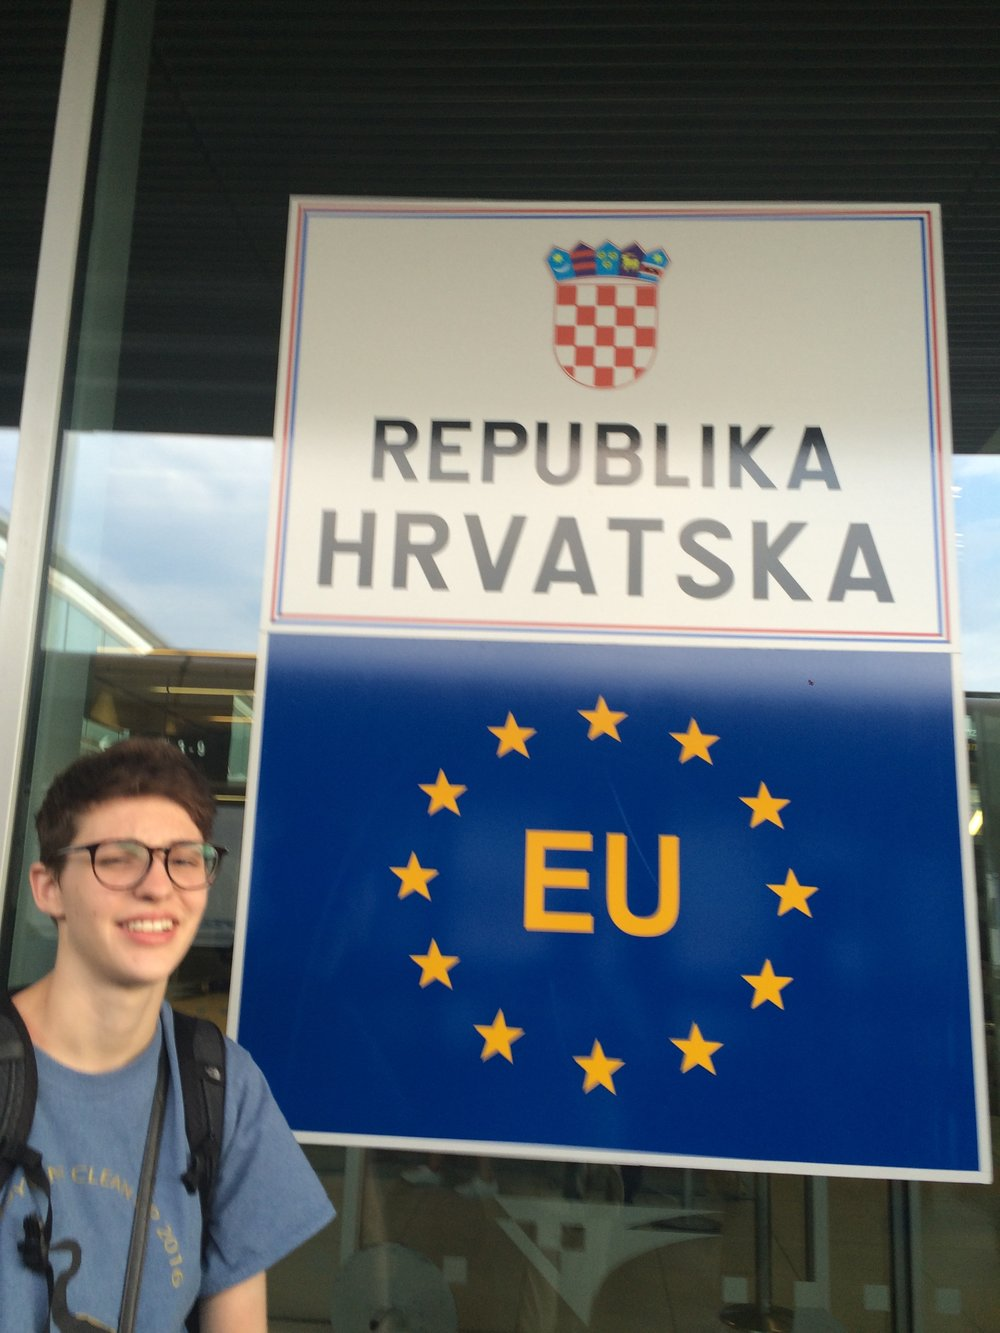 Welcome to Hrvatska!